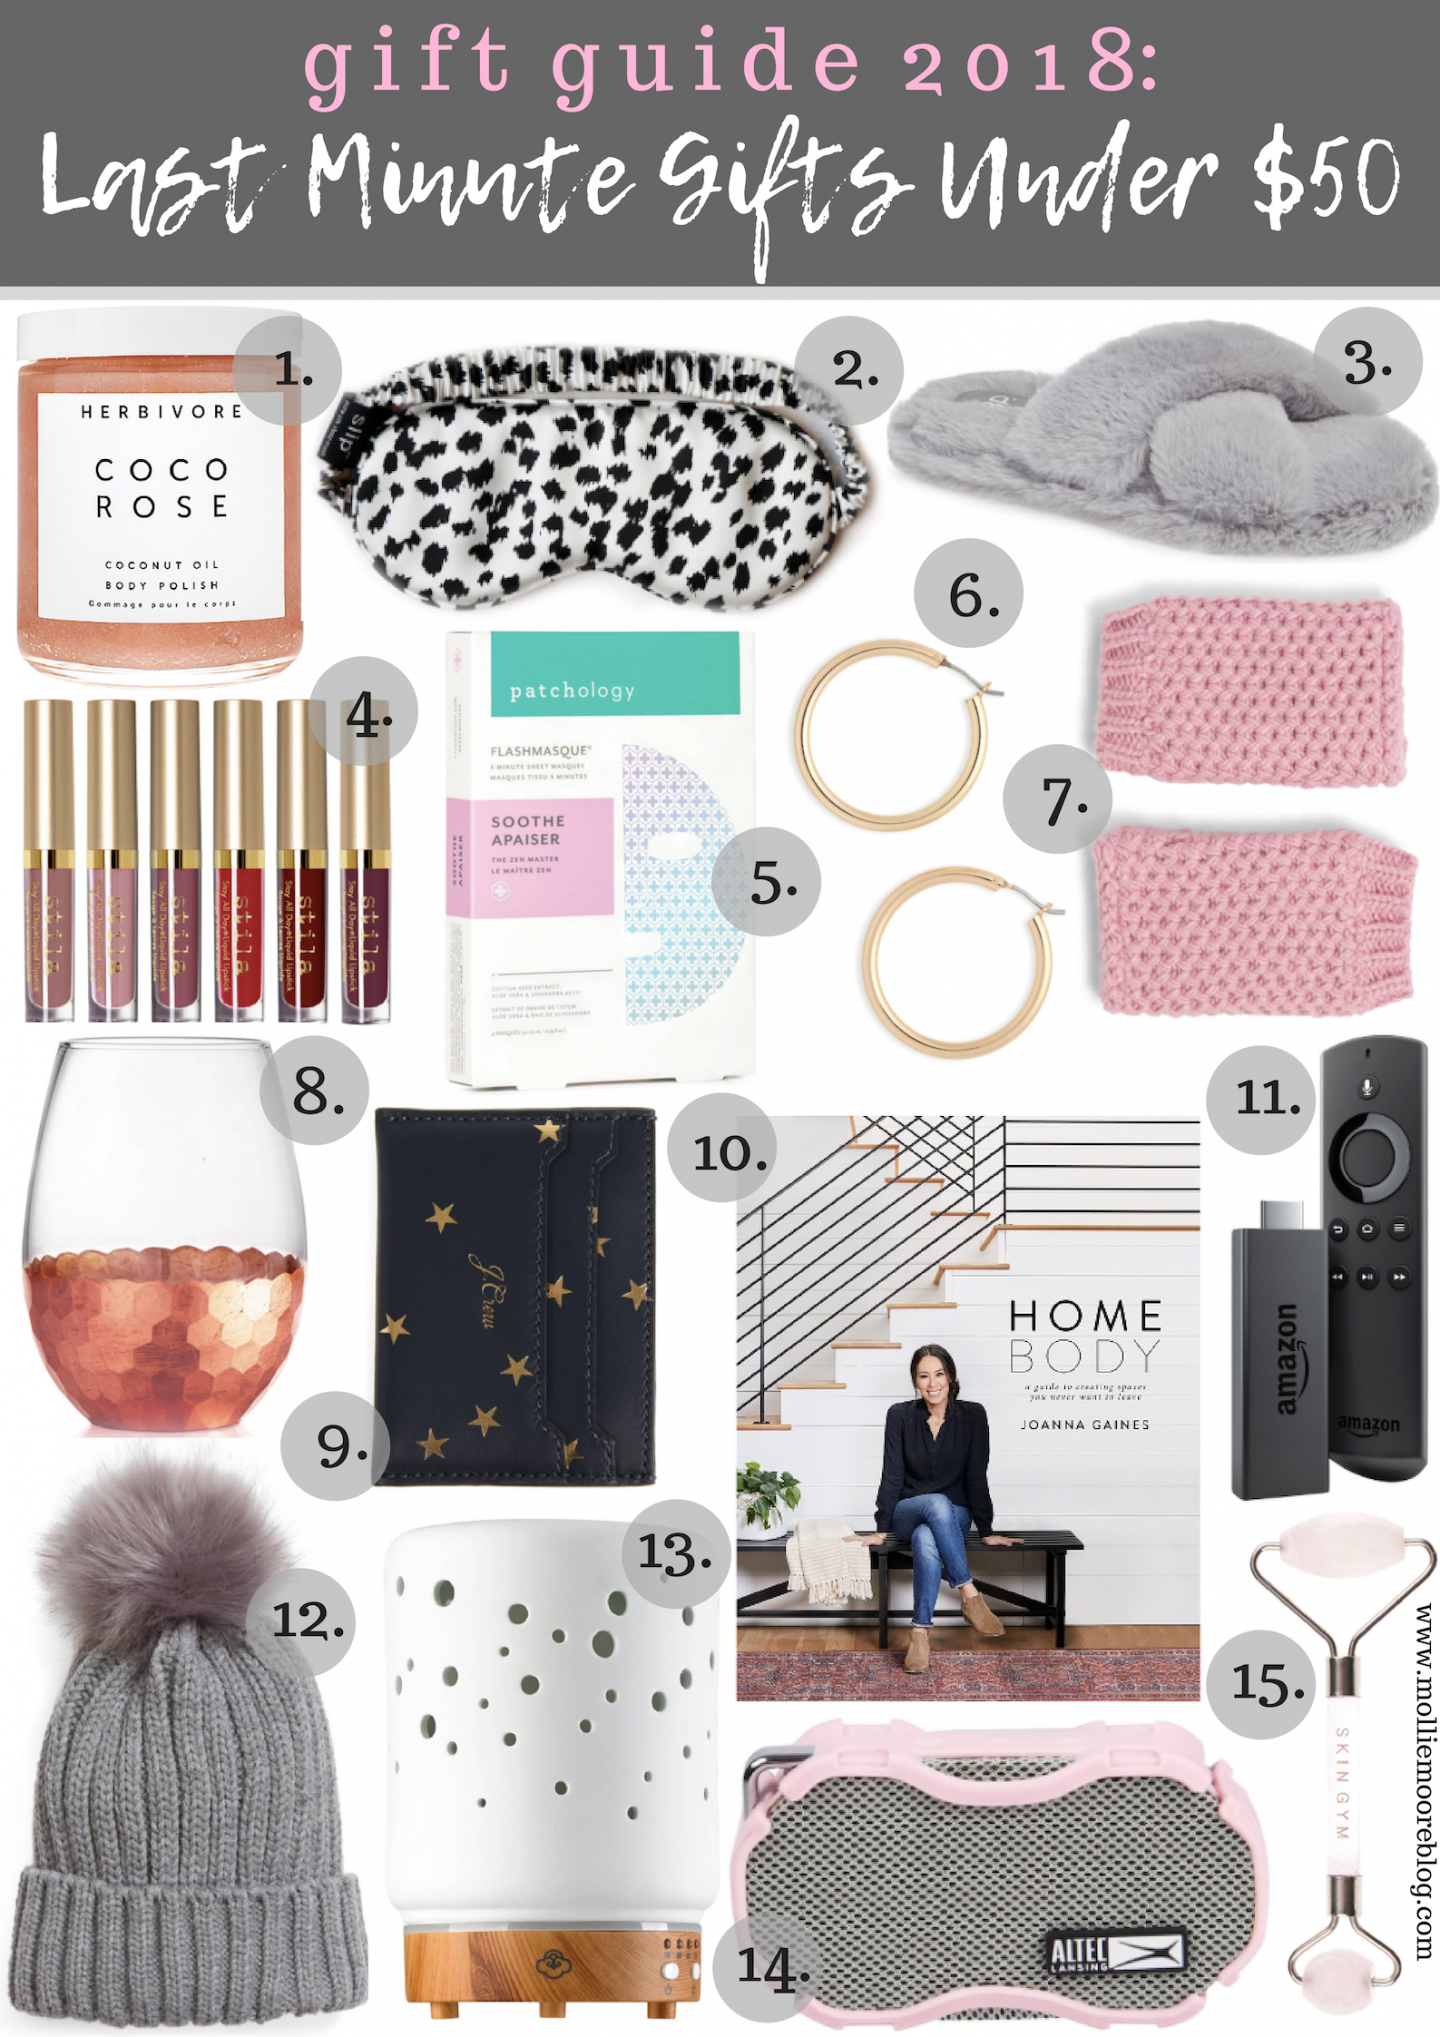 Lifestyle blogger Mollie Moores shares her top last minute gift ideas under $50